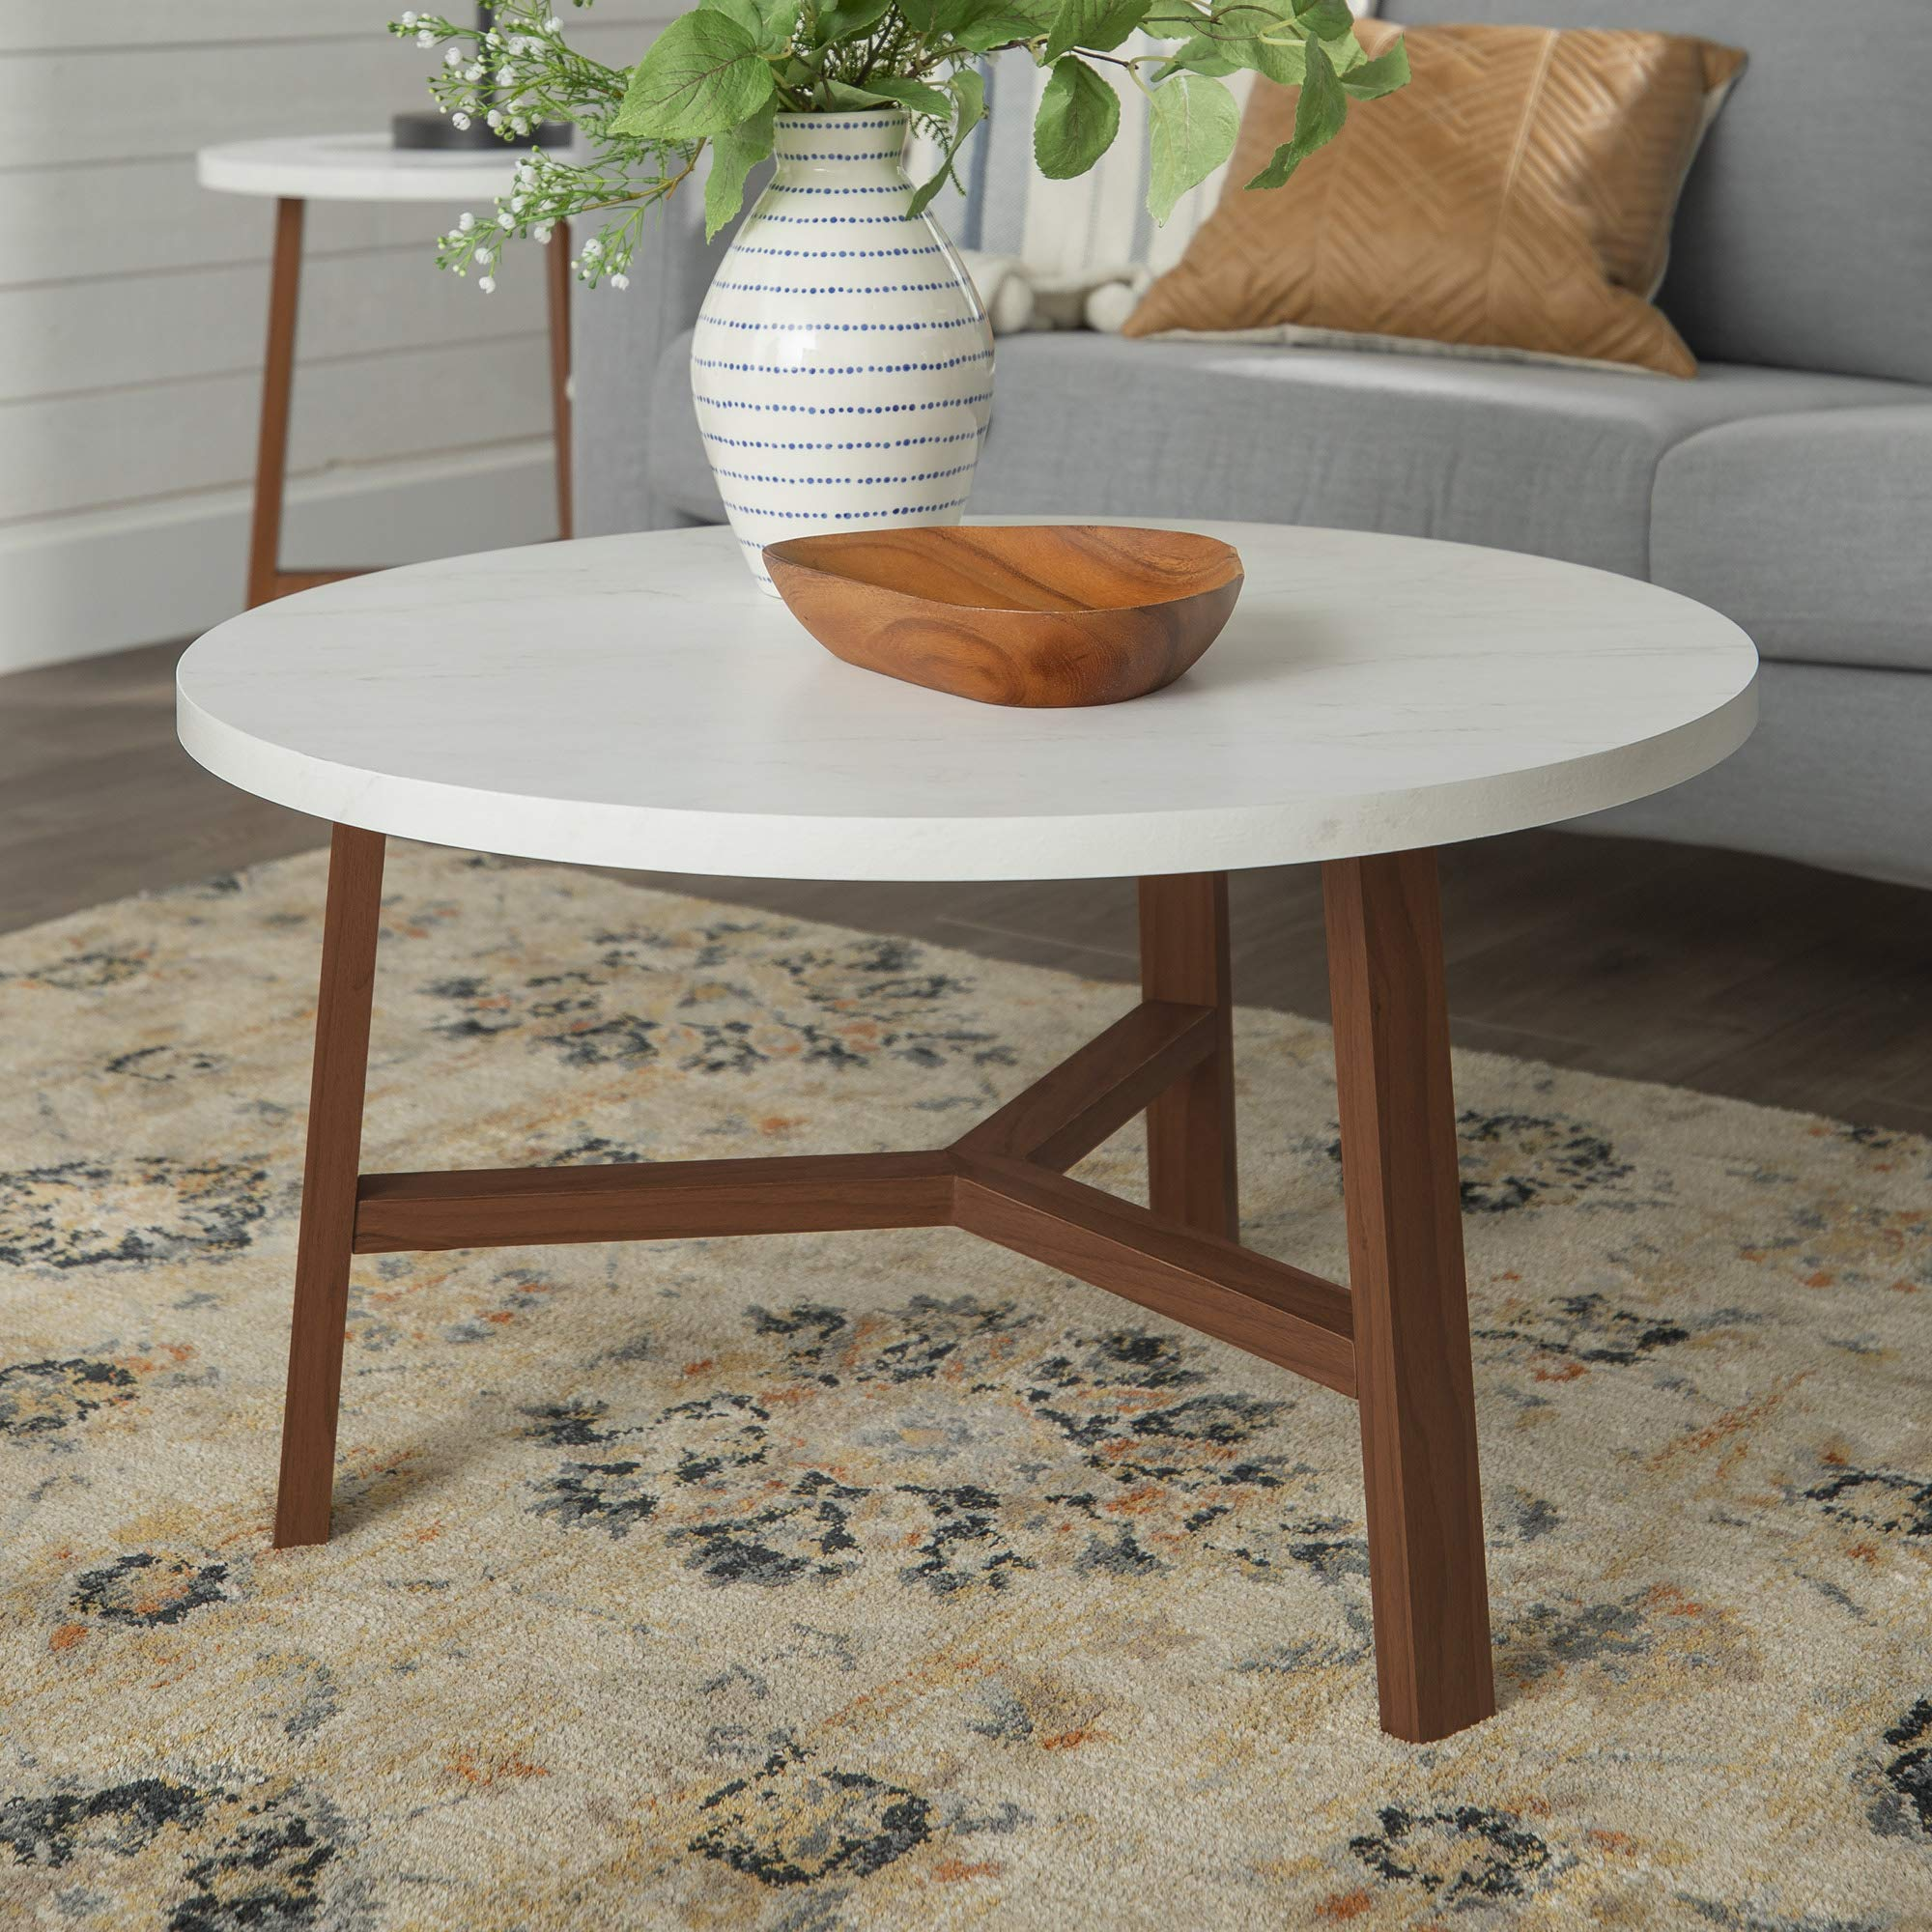 WE Furniture Mid Century Modern Round Coffee Accent Table Living Room, 30 Inch, White Marble, Brown by WE Furniture